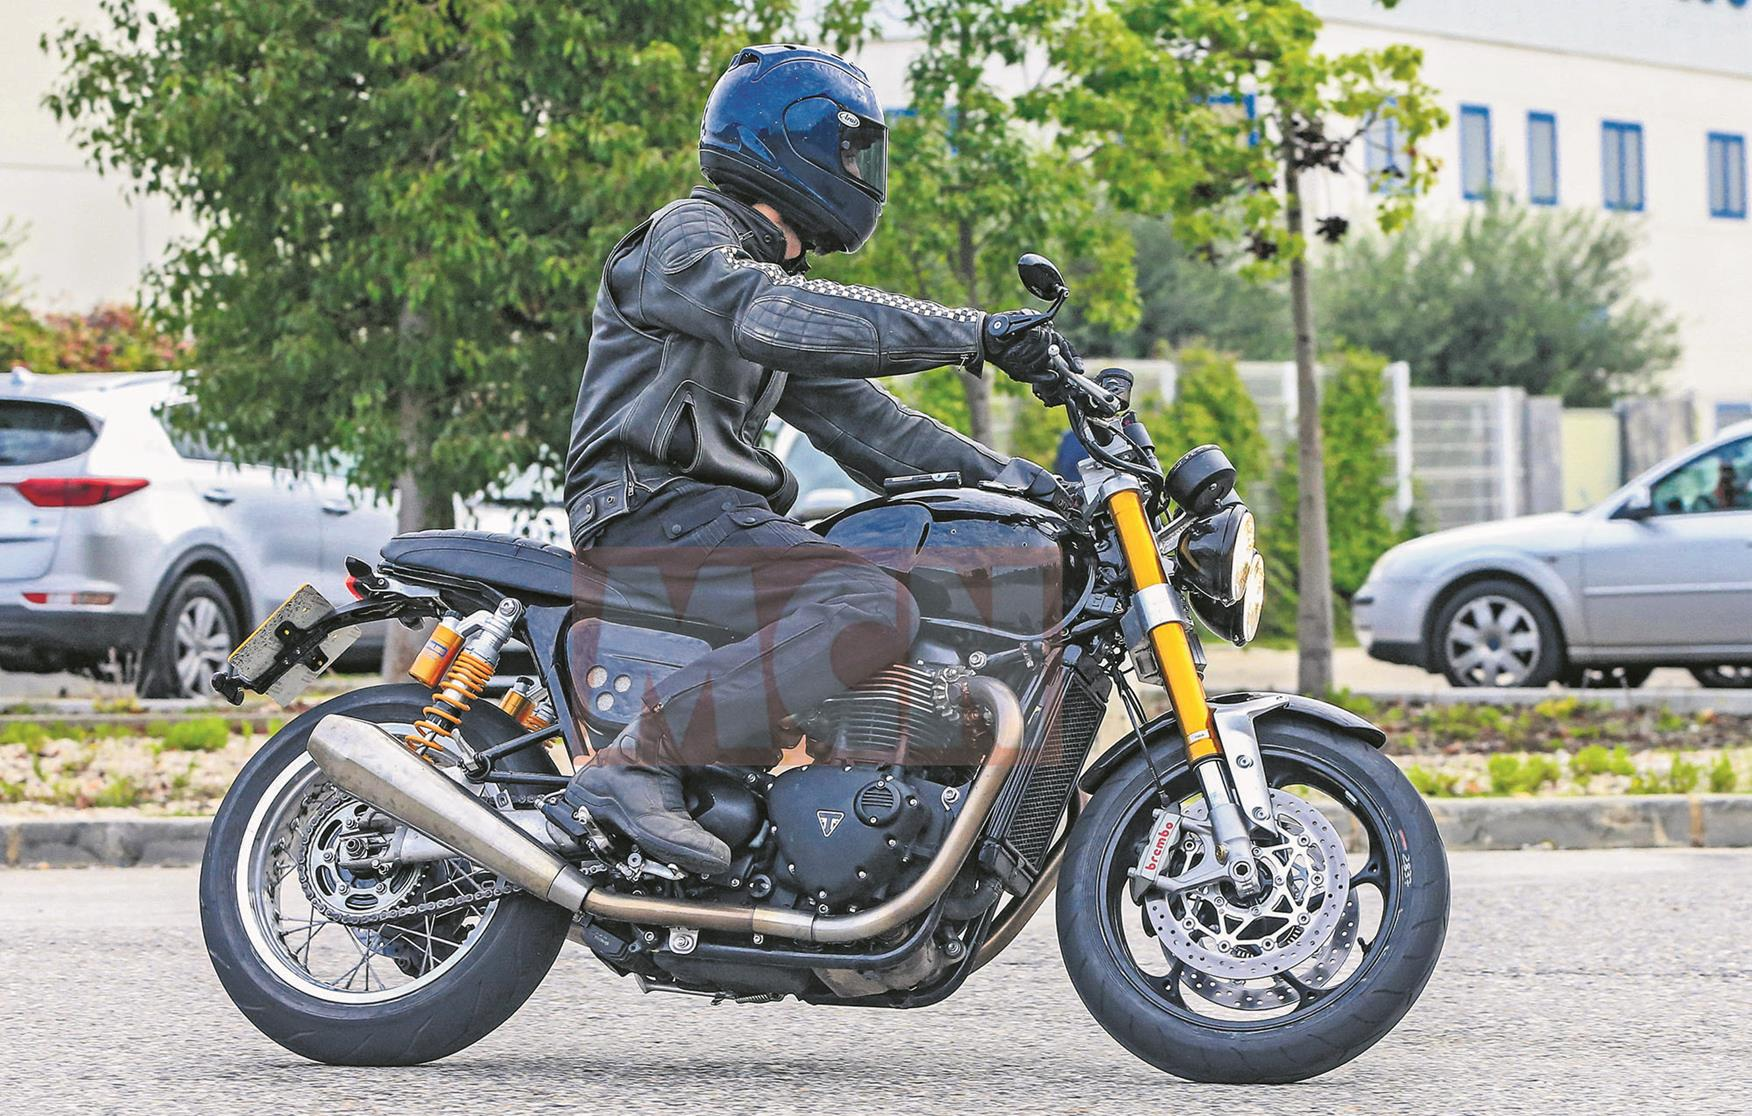 Triumph Speed Twin spy shots first emerged in 2016